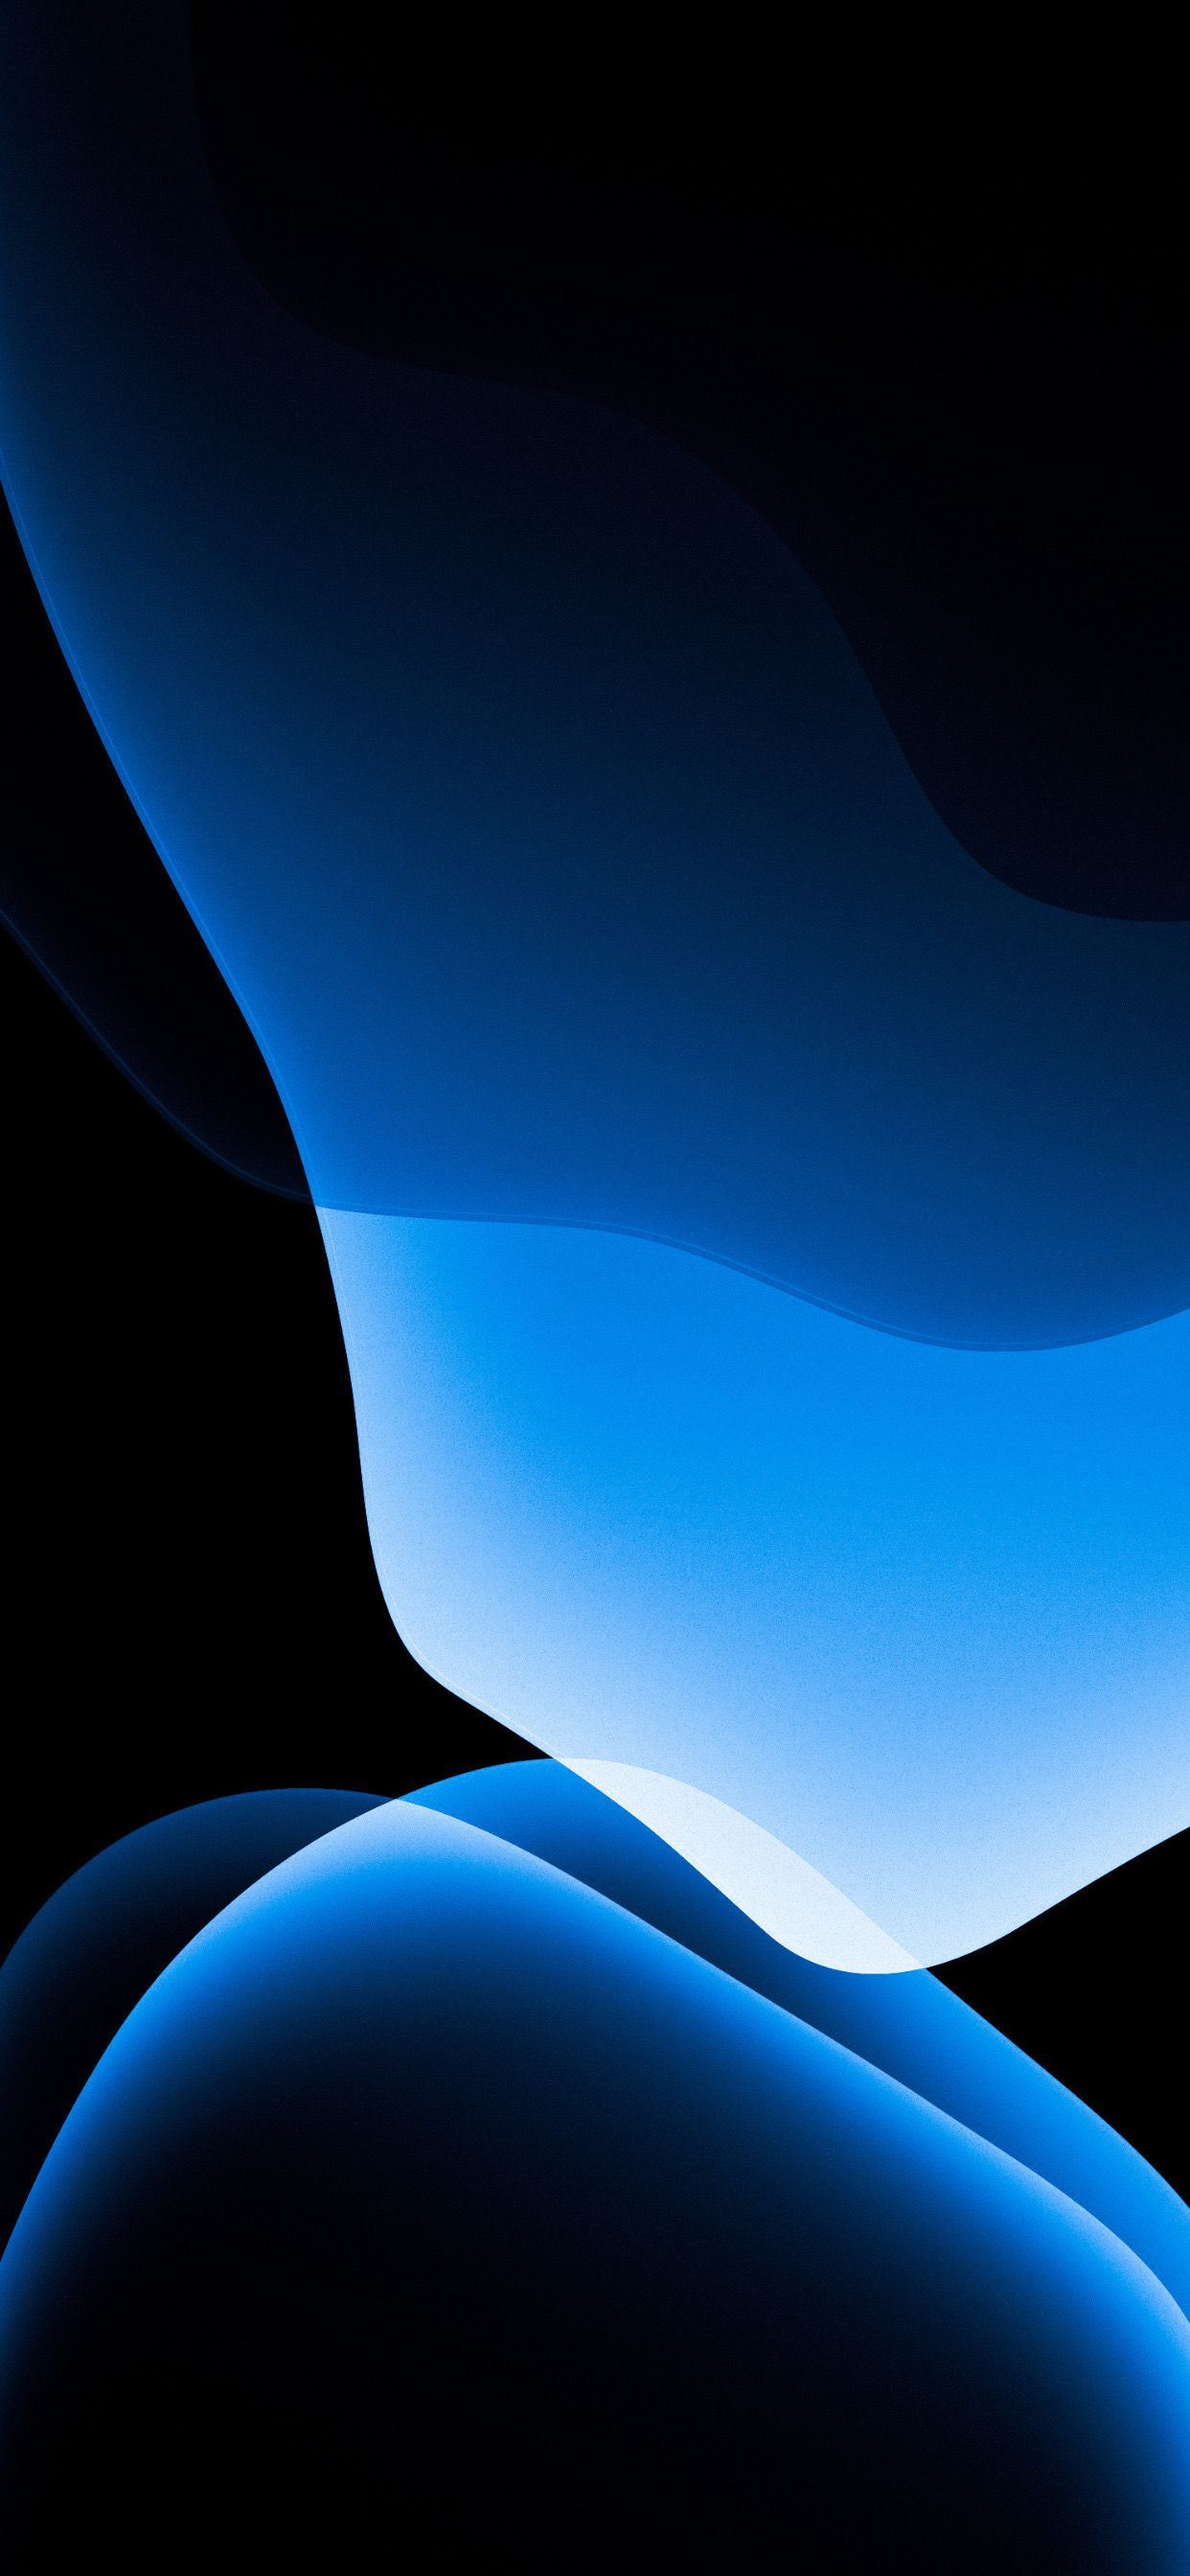 Blue iOS 13 redo by AR72014 on Twitter New wallpaper